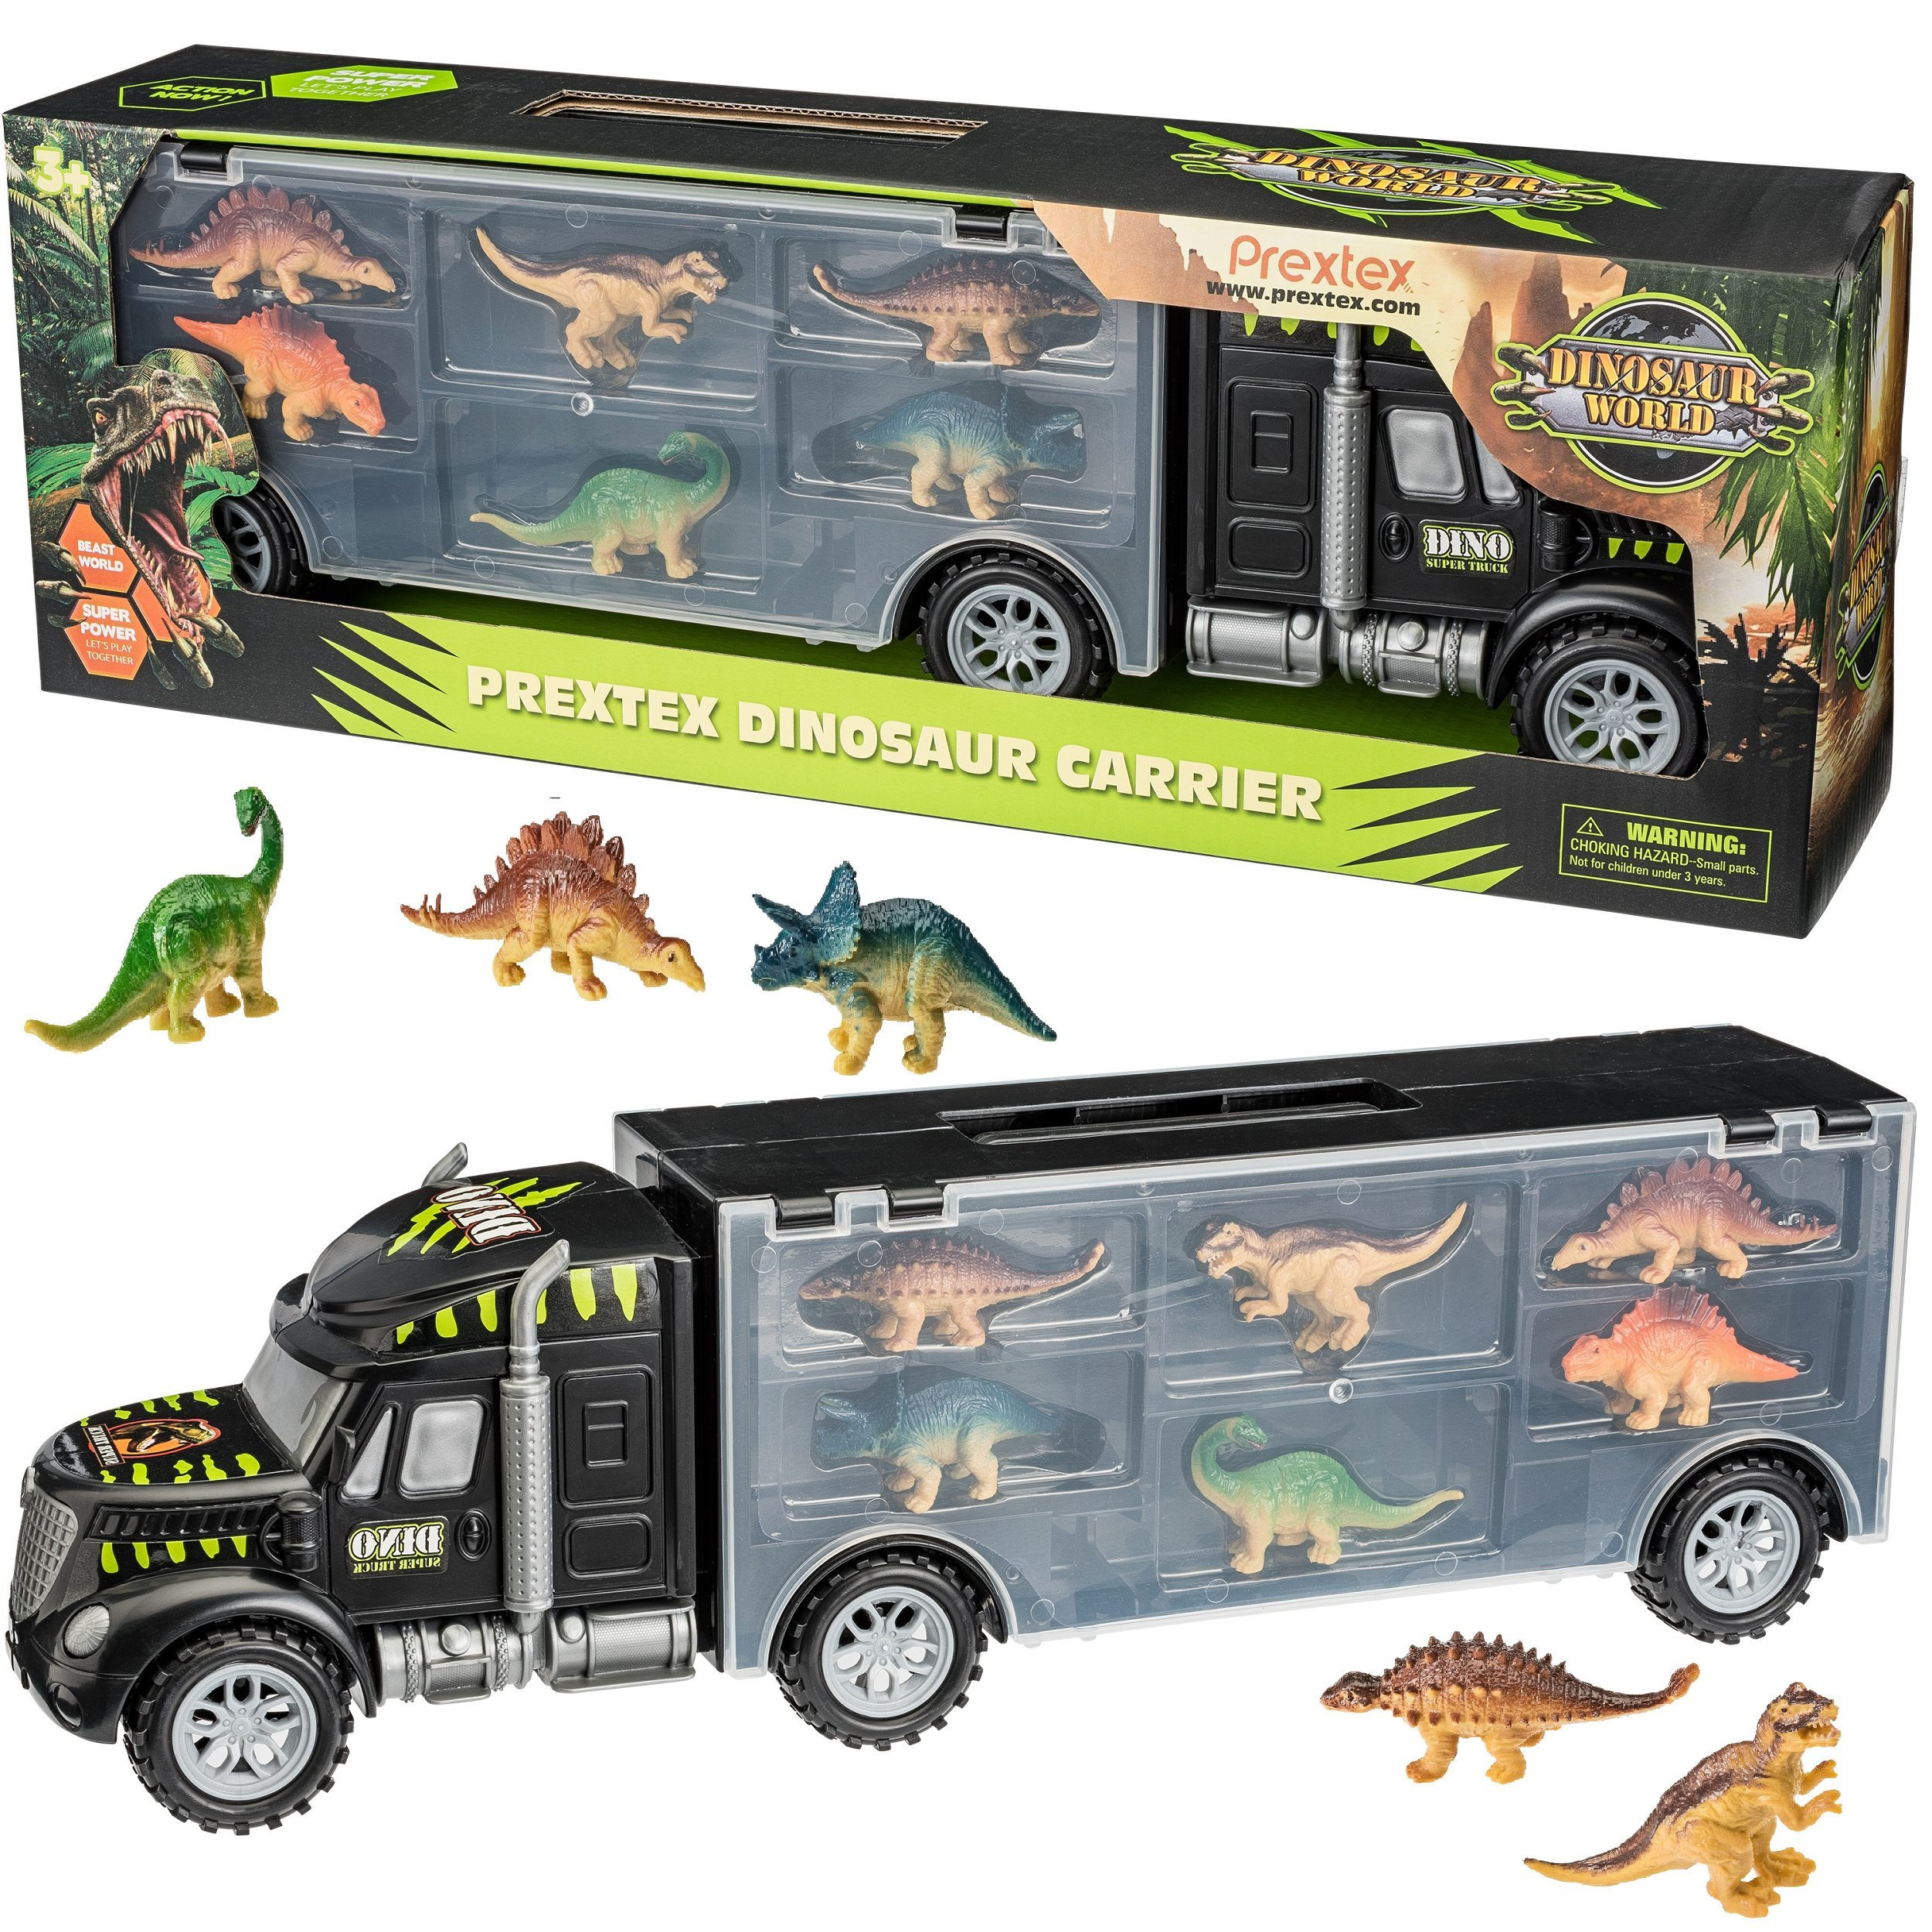 "Prextex 16"" Tractor Trailer Dinosaur Carrier with 6 Mini Plastic Dinosaurs"